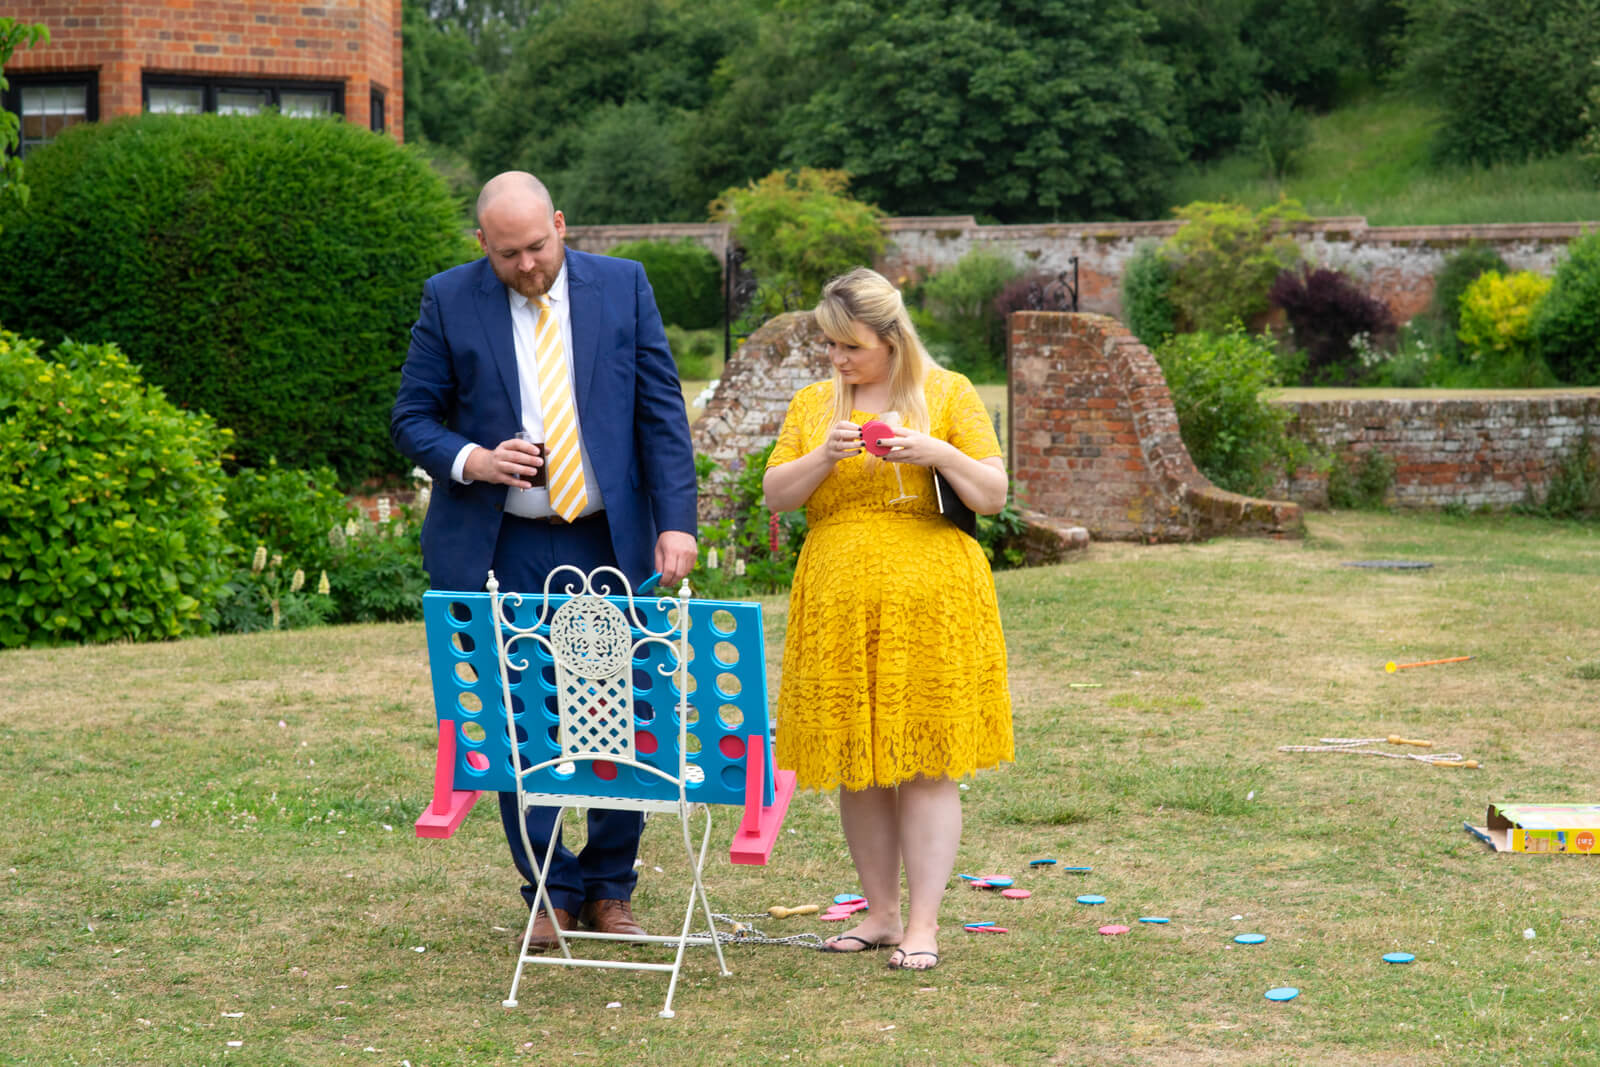 Couple at a wedding reception play giant connect four in the garden